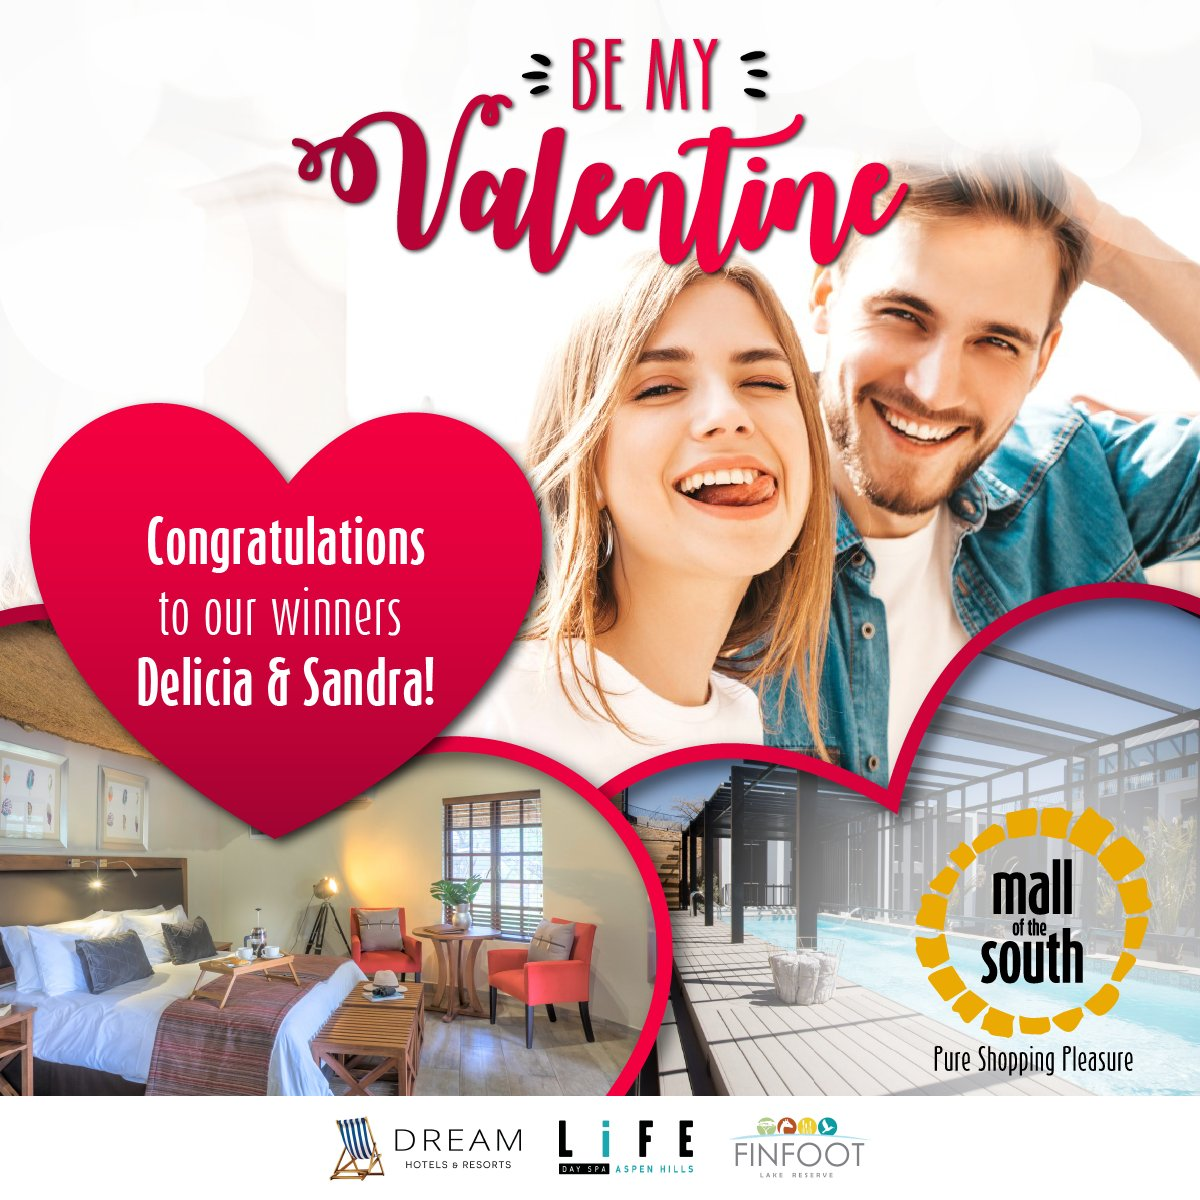 A BIG Mall of the South congratulations to our #BeMyValentine competition winners!   Delicia, has won a weekend getaway for two to @finfootlodge valued at R7760  Sandra, has won a @SpaAspen voucher where she can enjoy a pamper session for two valued at R7240pic.twitter.com/r4MtQjcxip